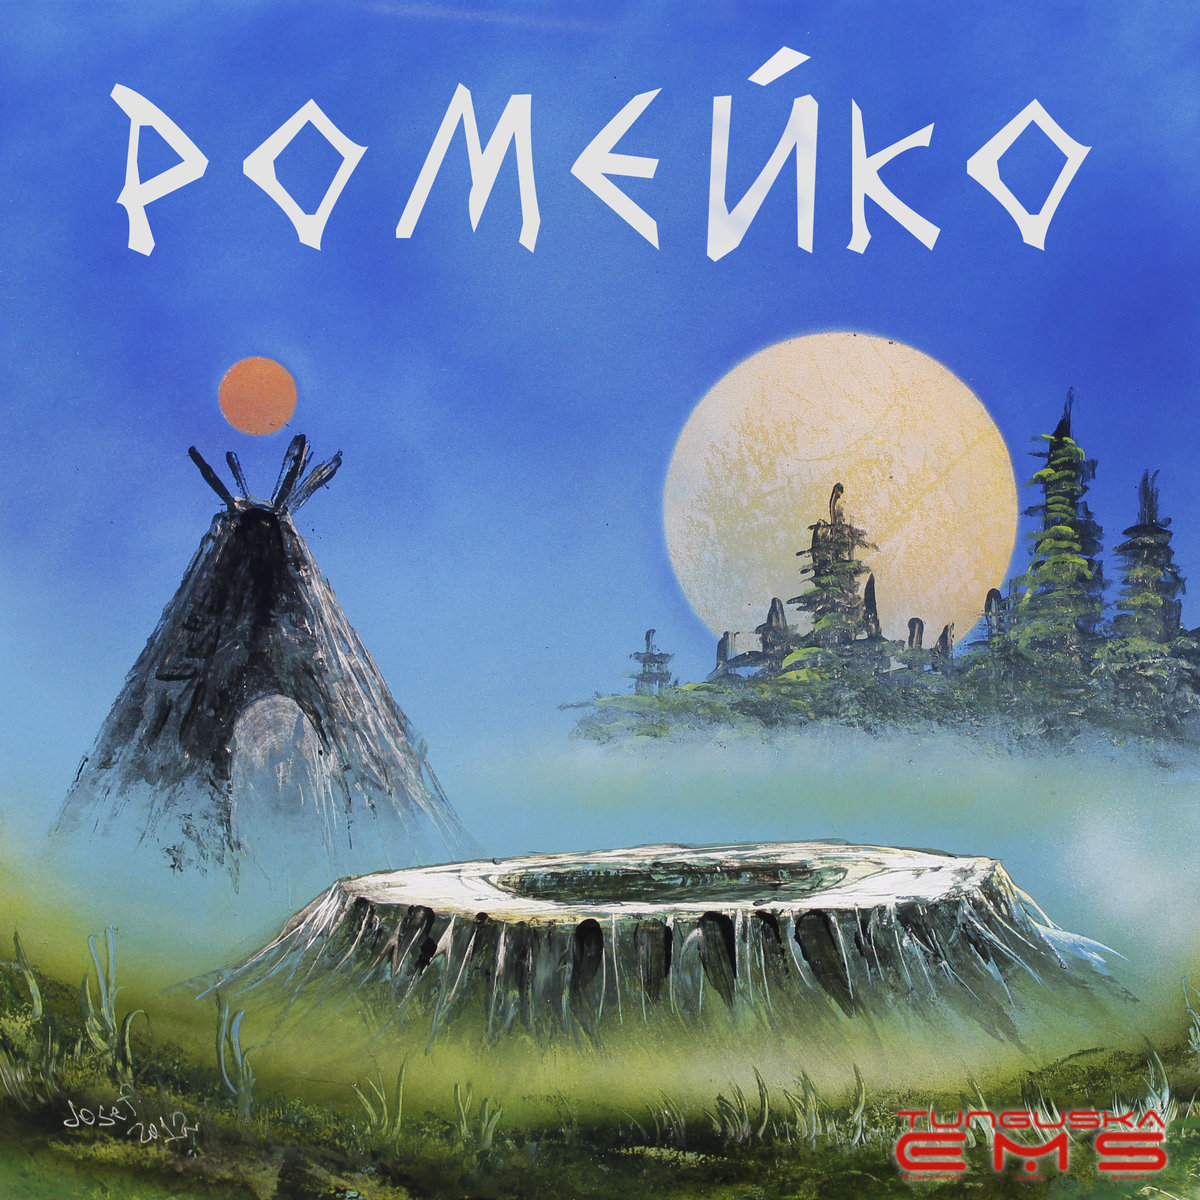 AoL - Magic Mushrooms @ 'Craters - Romeiko' album (electronic, ambient)